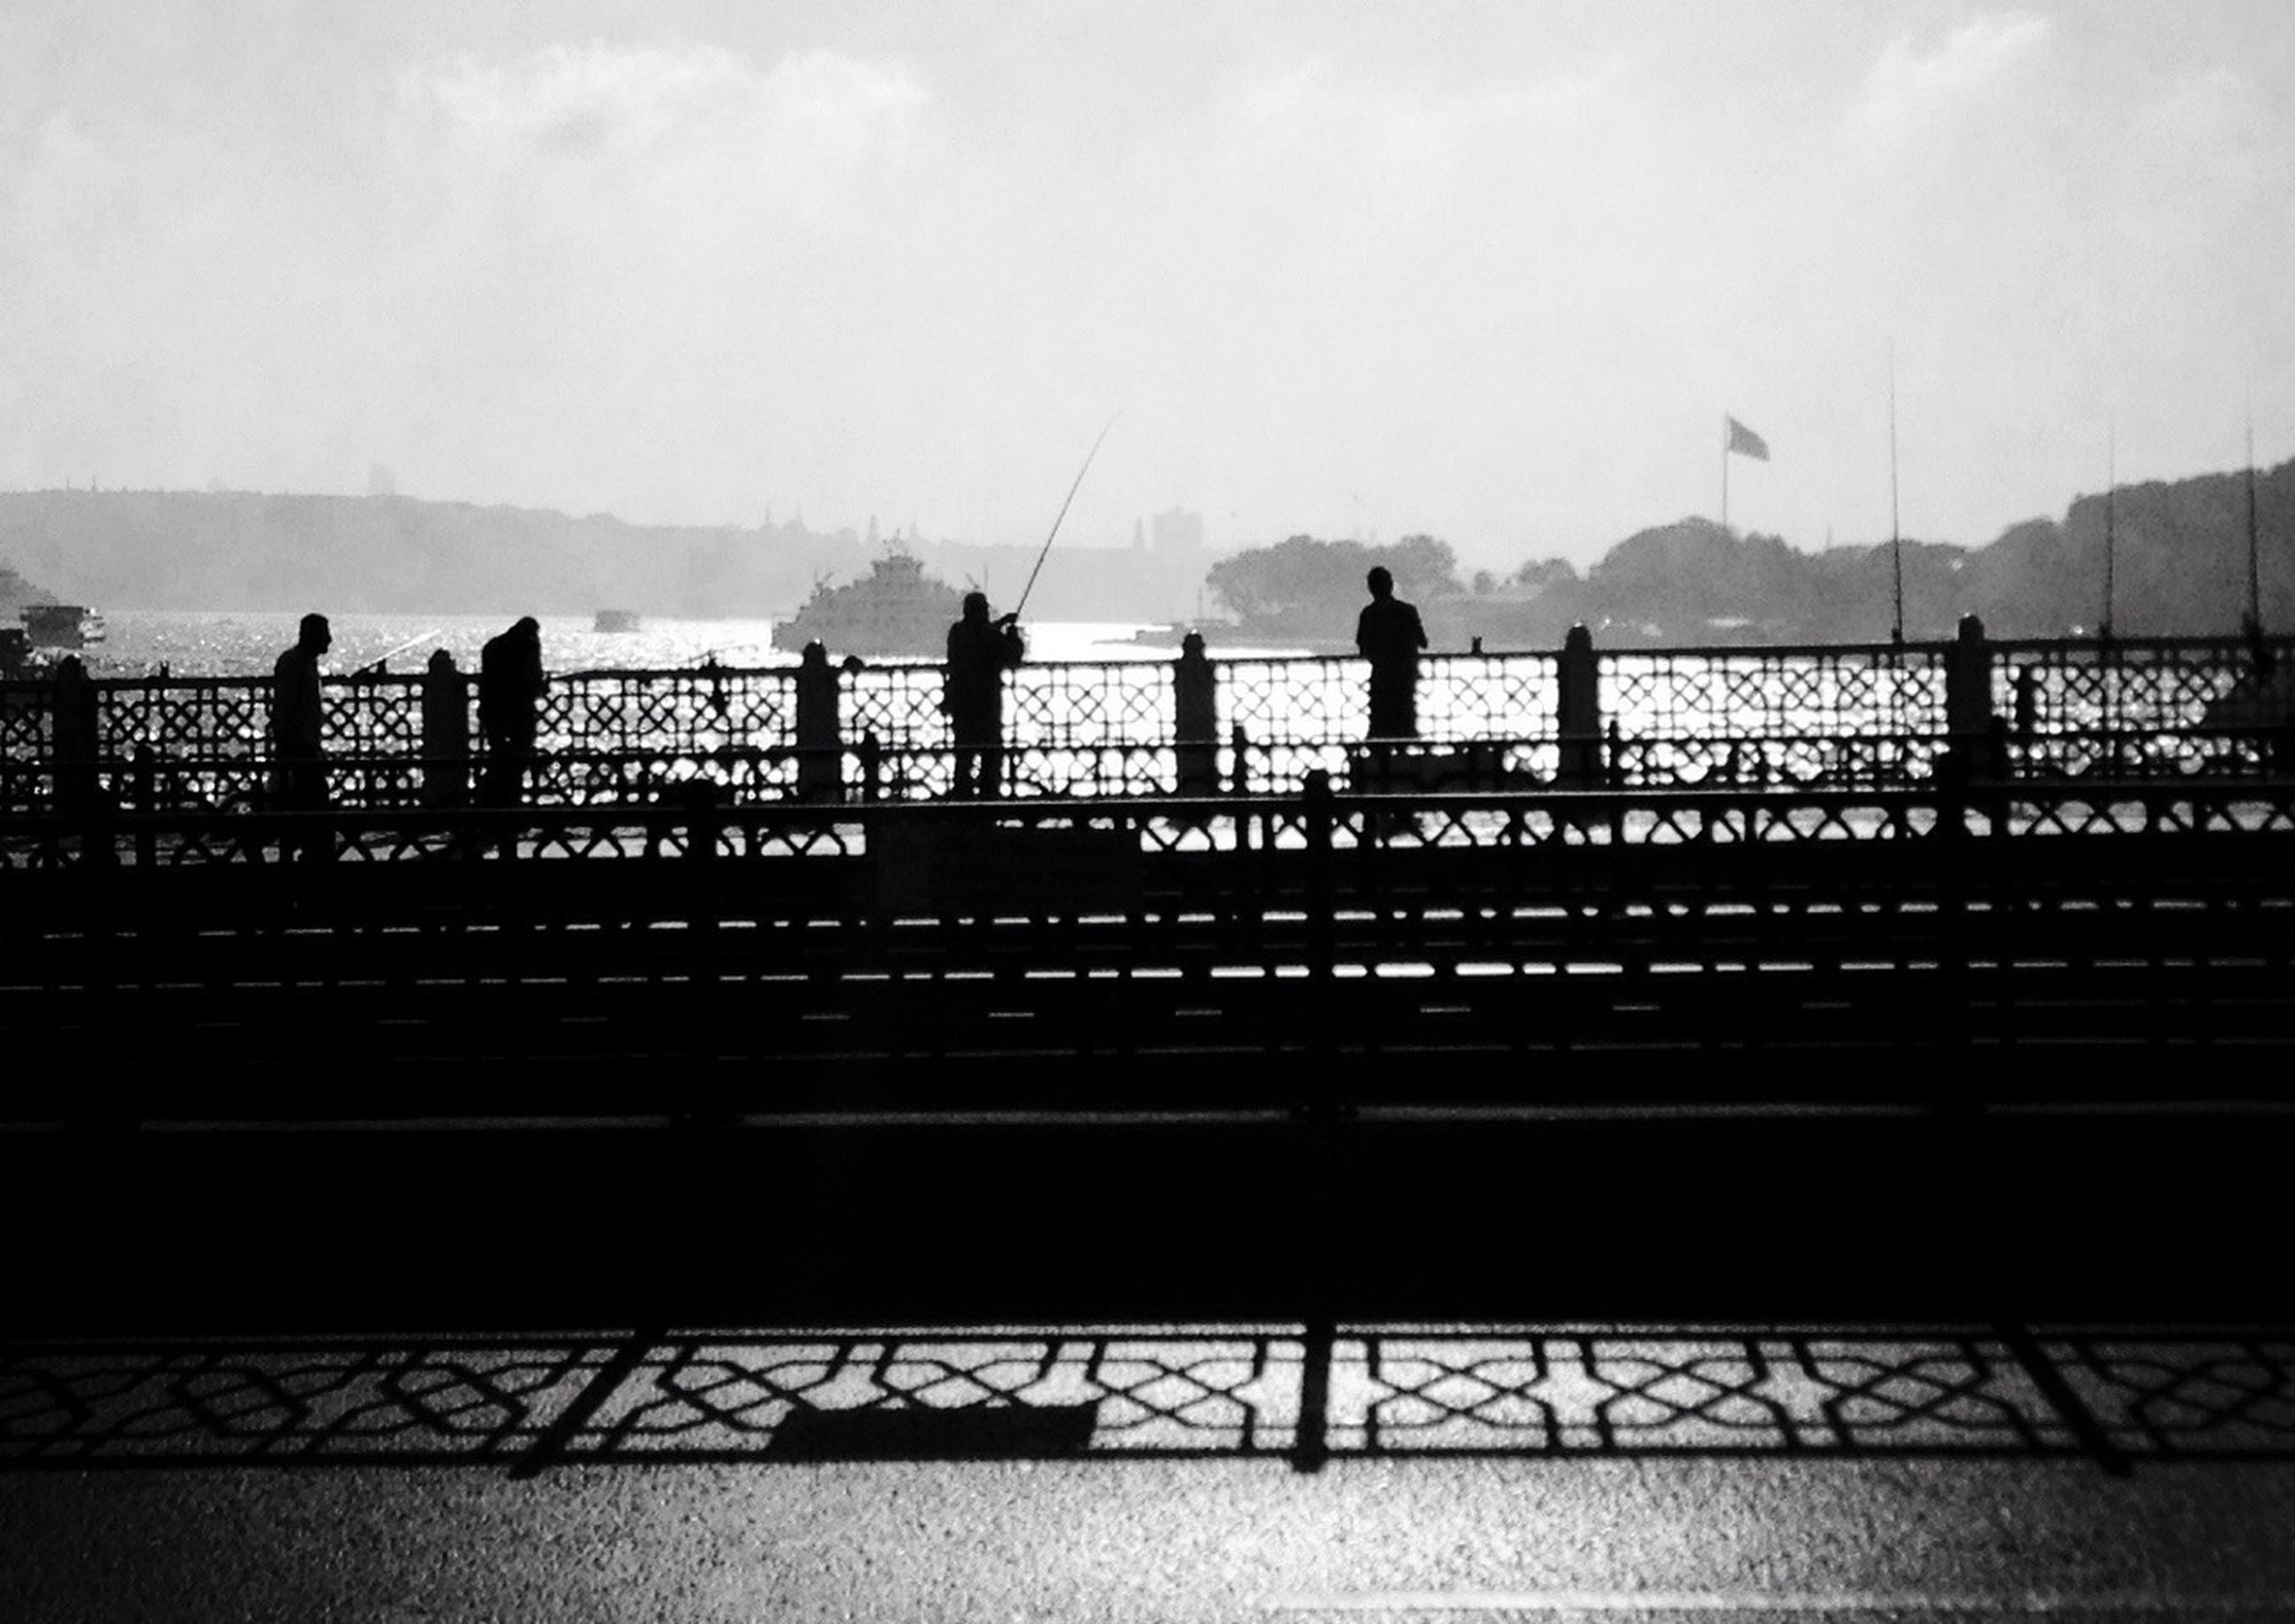 railing, lifestyles, men, leisure activity, silhouette, person, walking, sky, bridge - man made structure, full length, connection, medium group of people, standing, togetherness, water, rear view